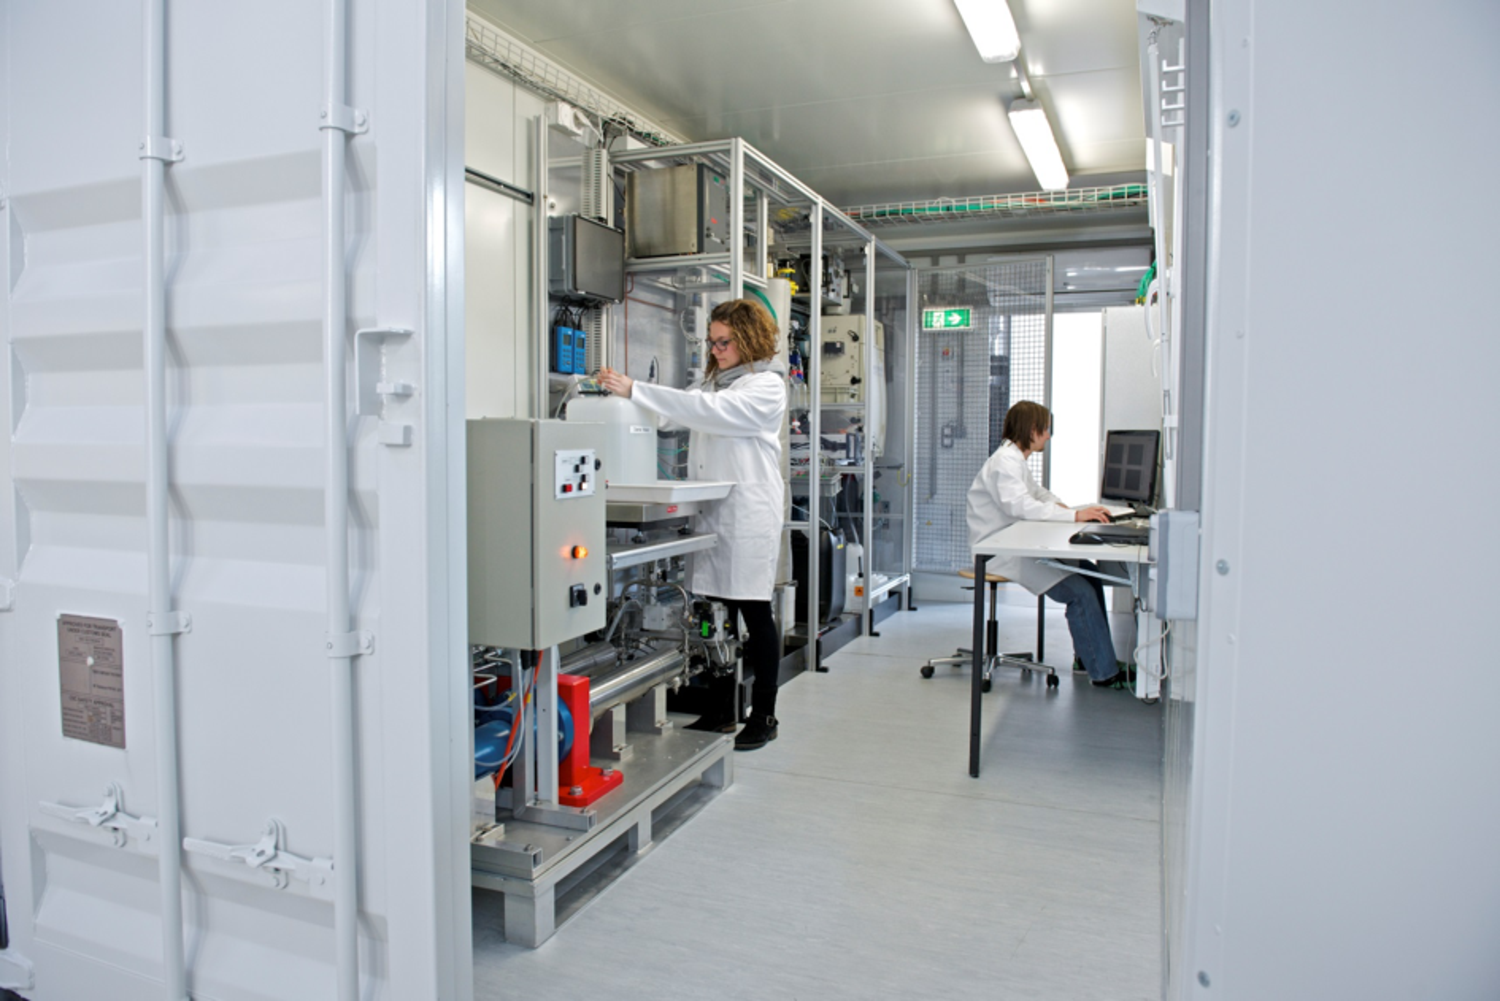 PSI's mobile research unit, KONTI-C, which is used to demonstrate the HTG process on a small scale at the site of potential users. Currently, a semi-industrial pilot plant is being set up at PSI. © Paul Scherrer Institute (PSI)